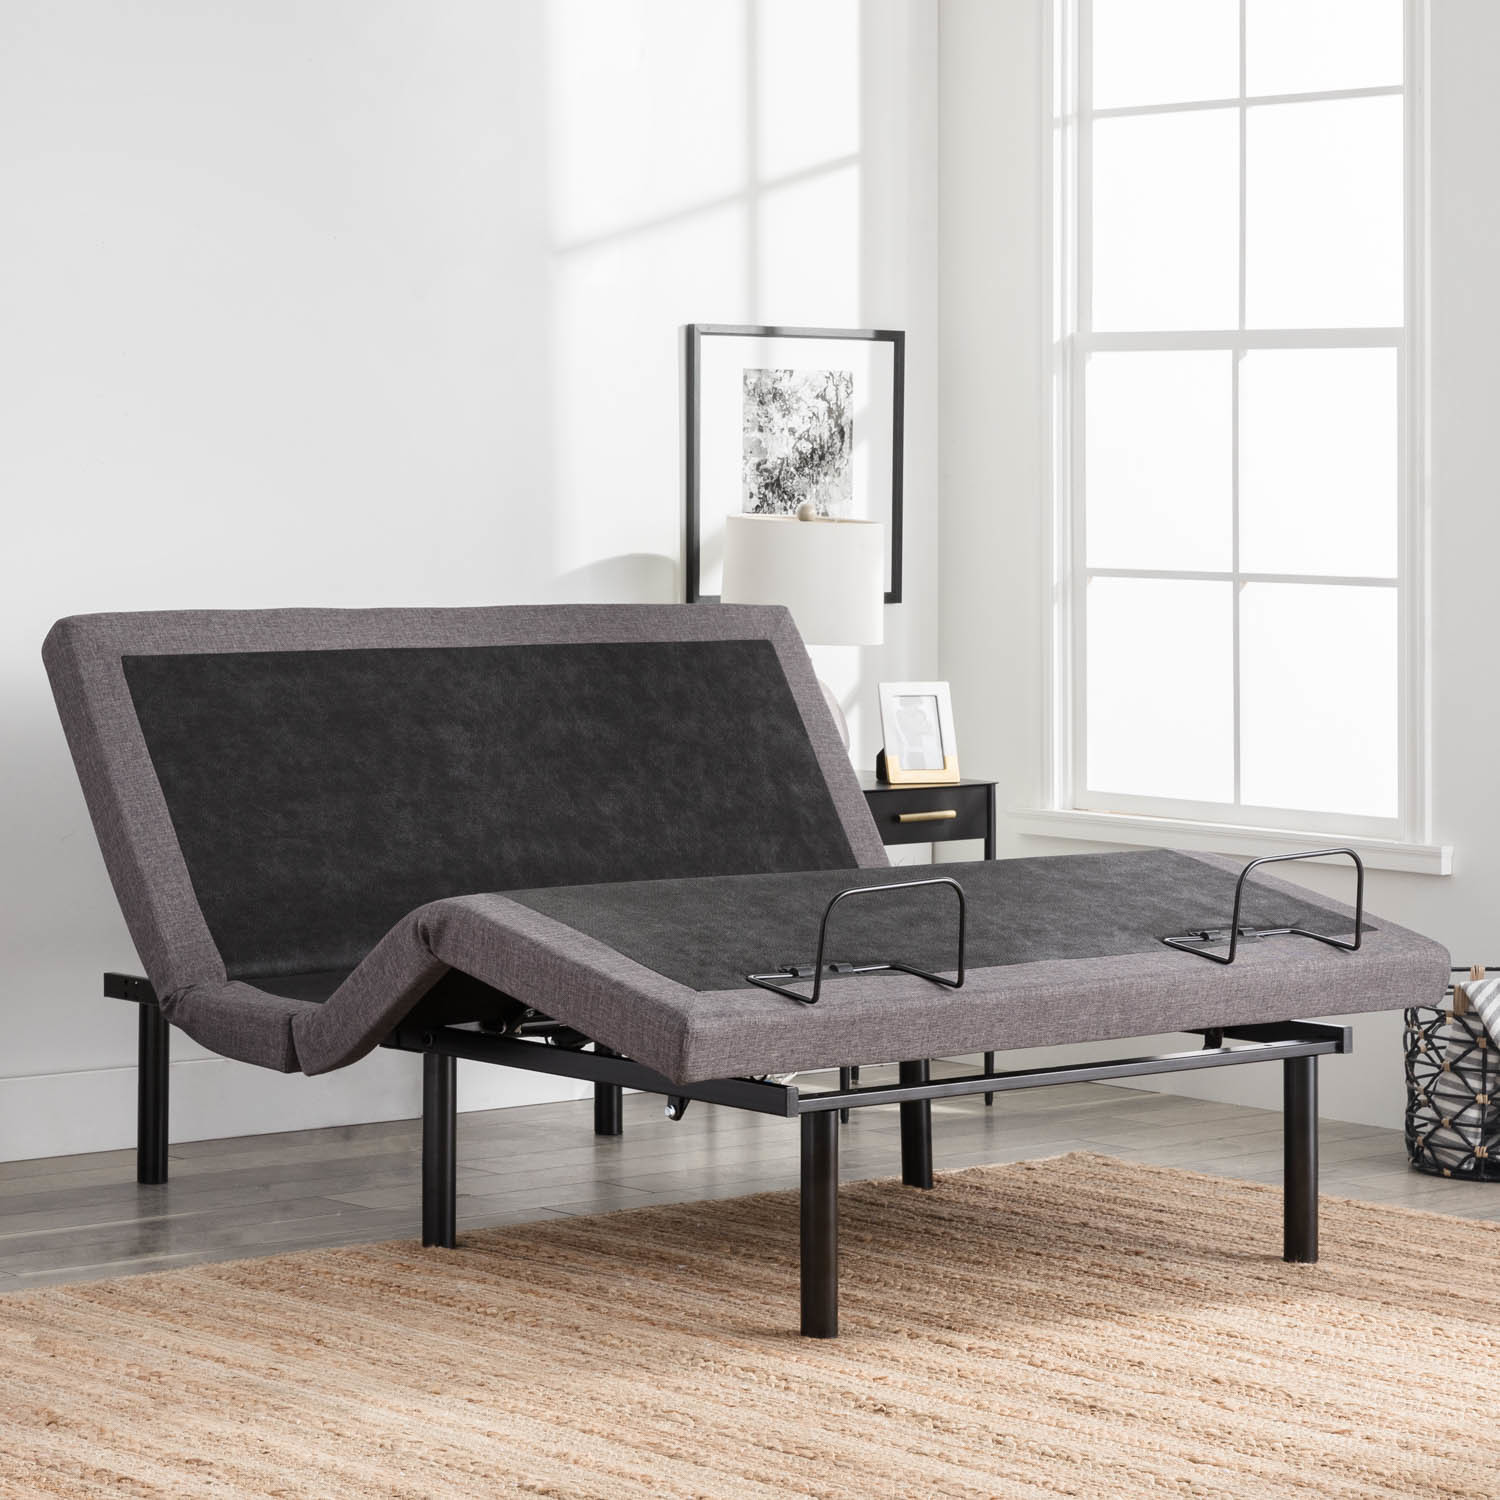 LUCID L300 Adjustable Bed Base